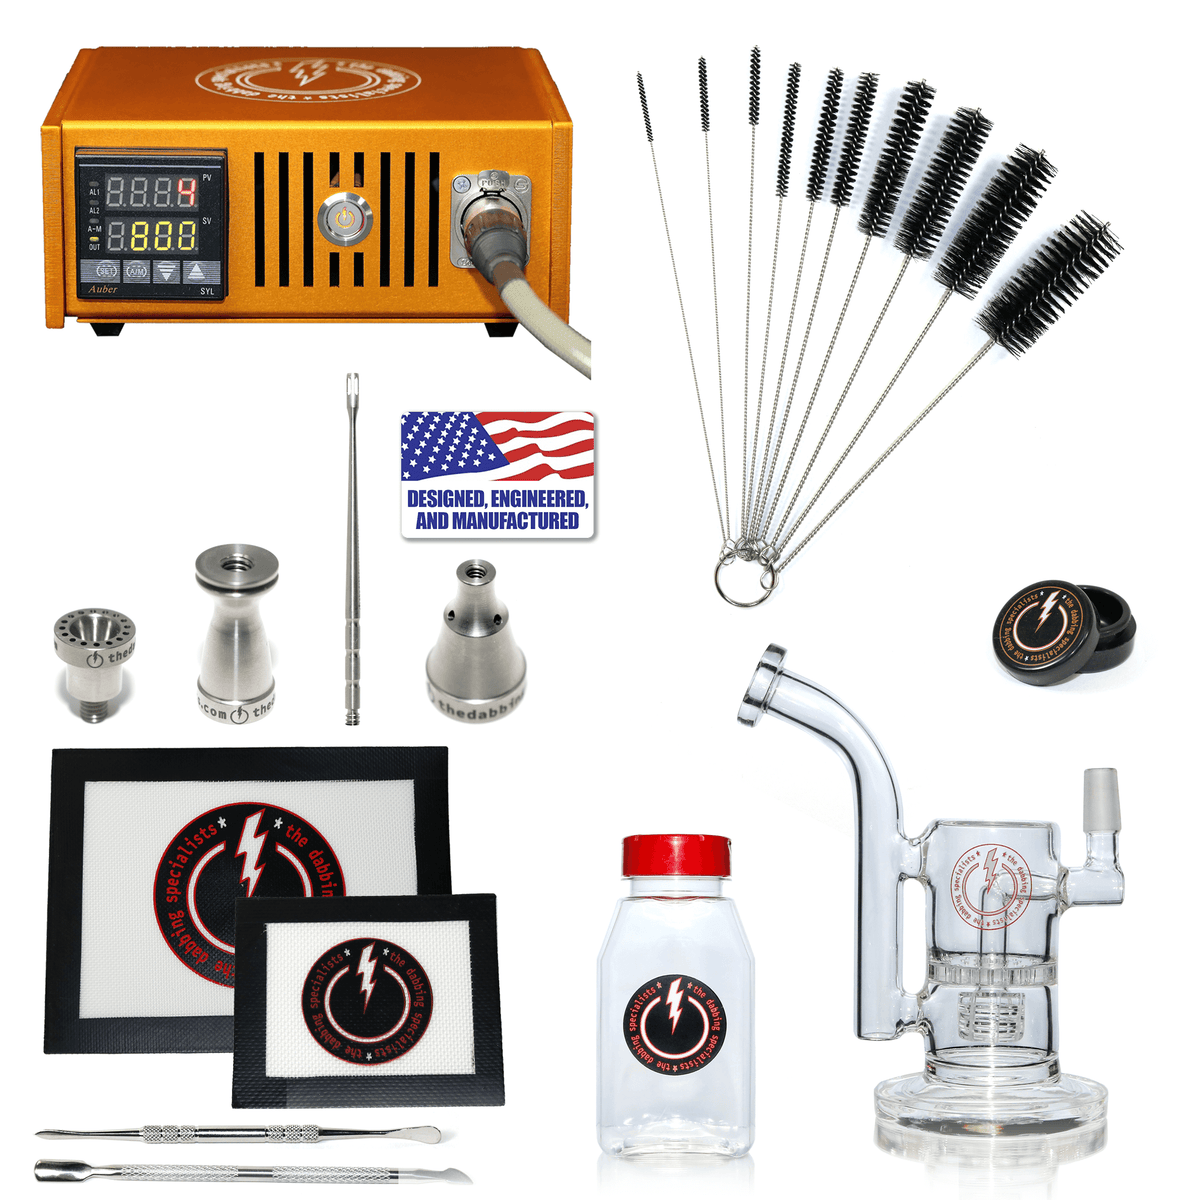 The Complete TDS Dabbing Enail Kit - Intermediate Version in Orange